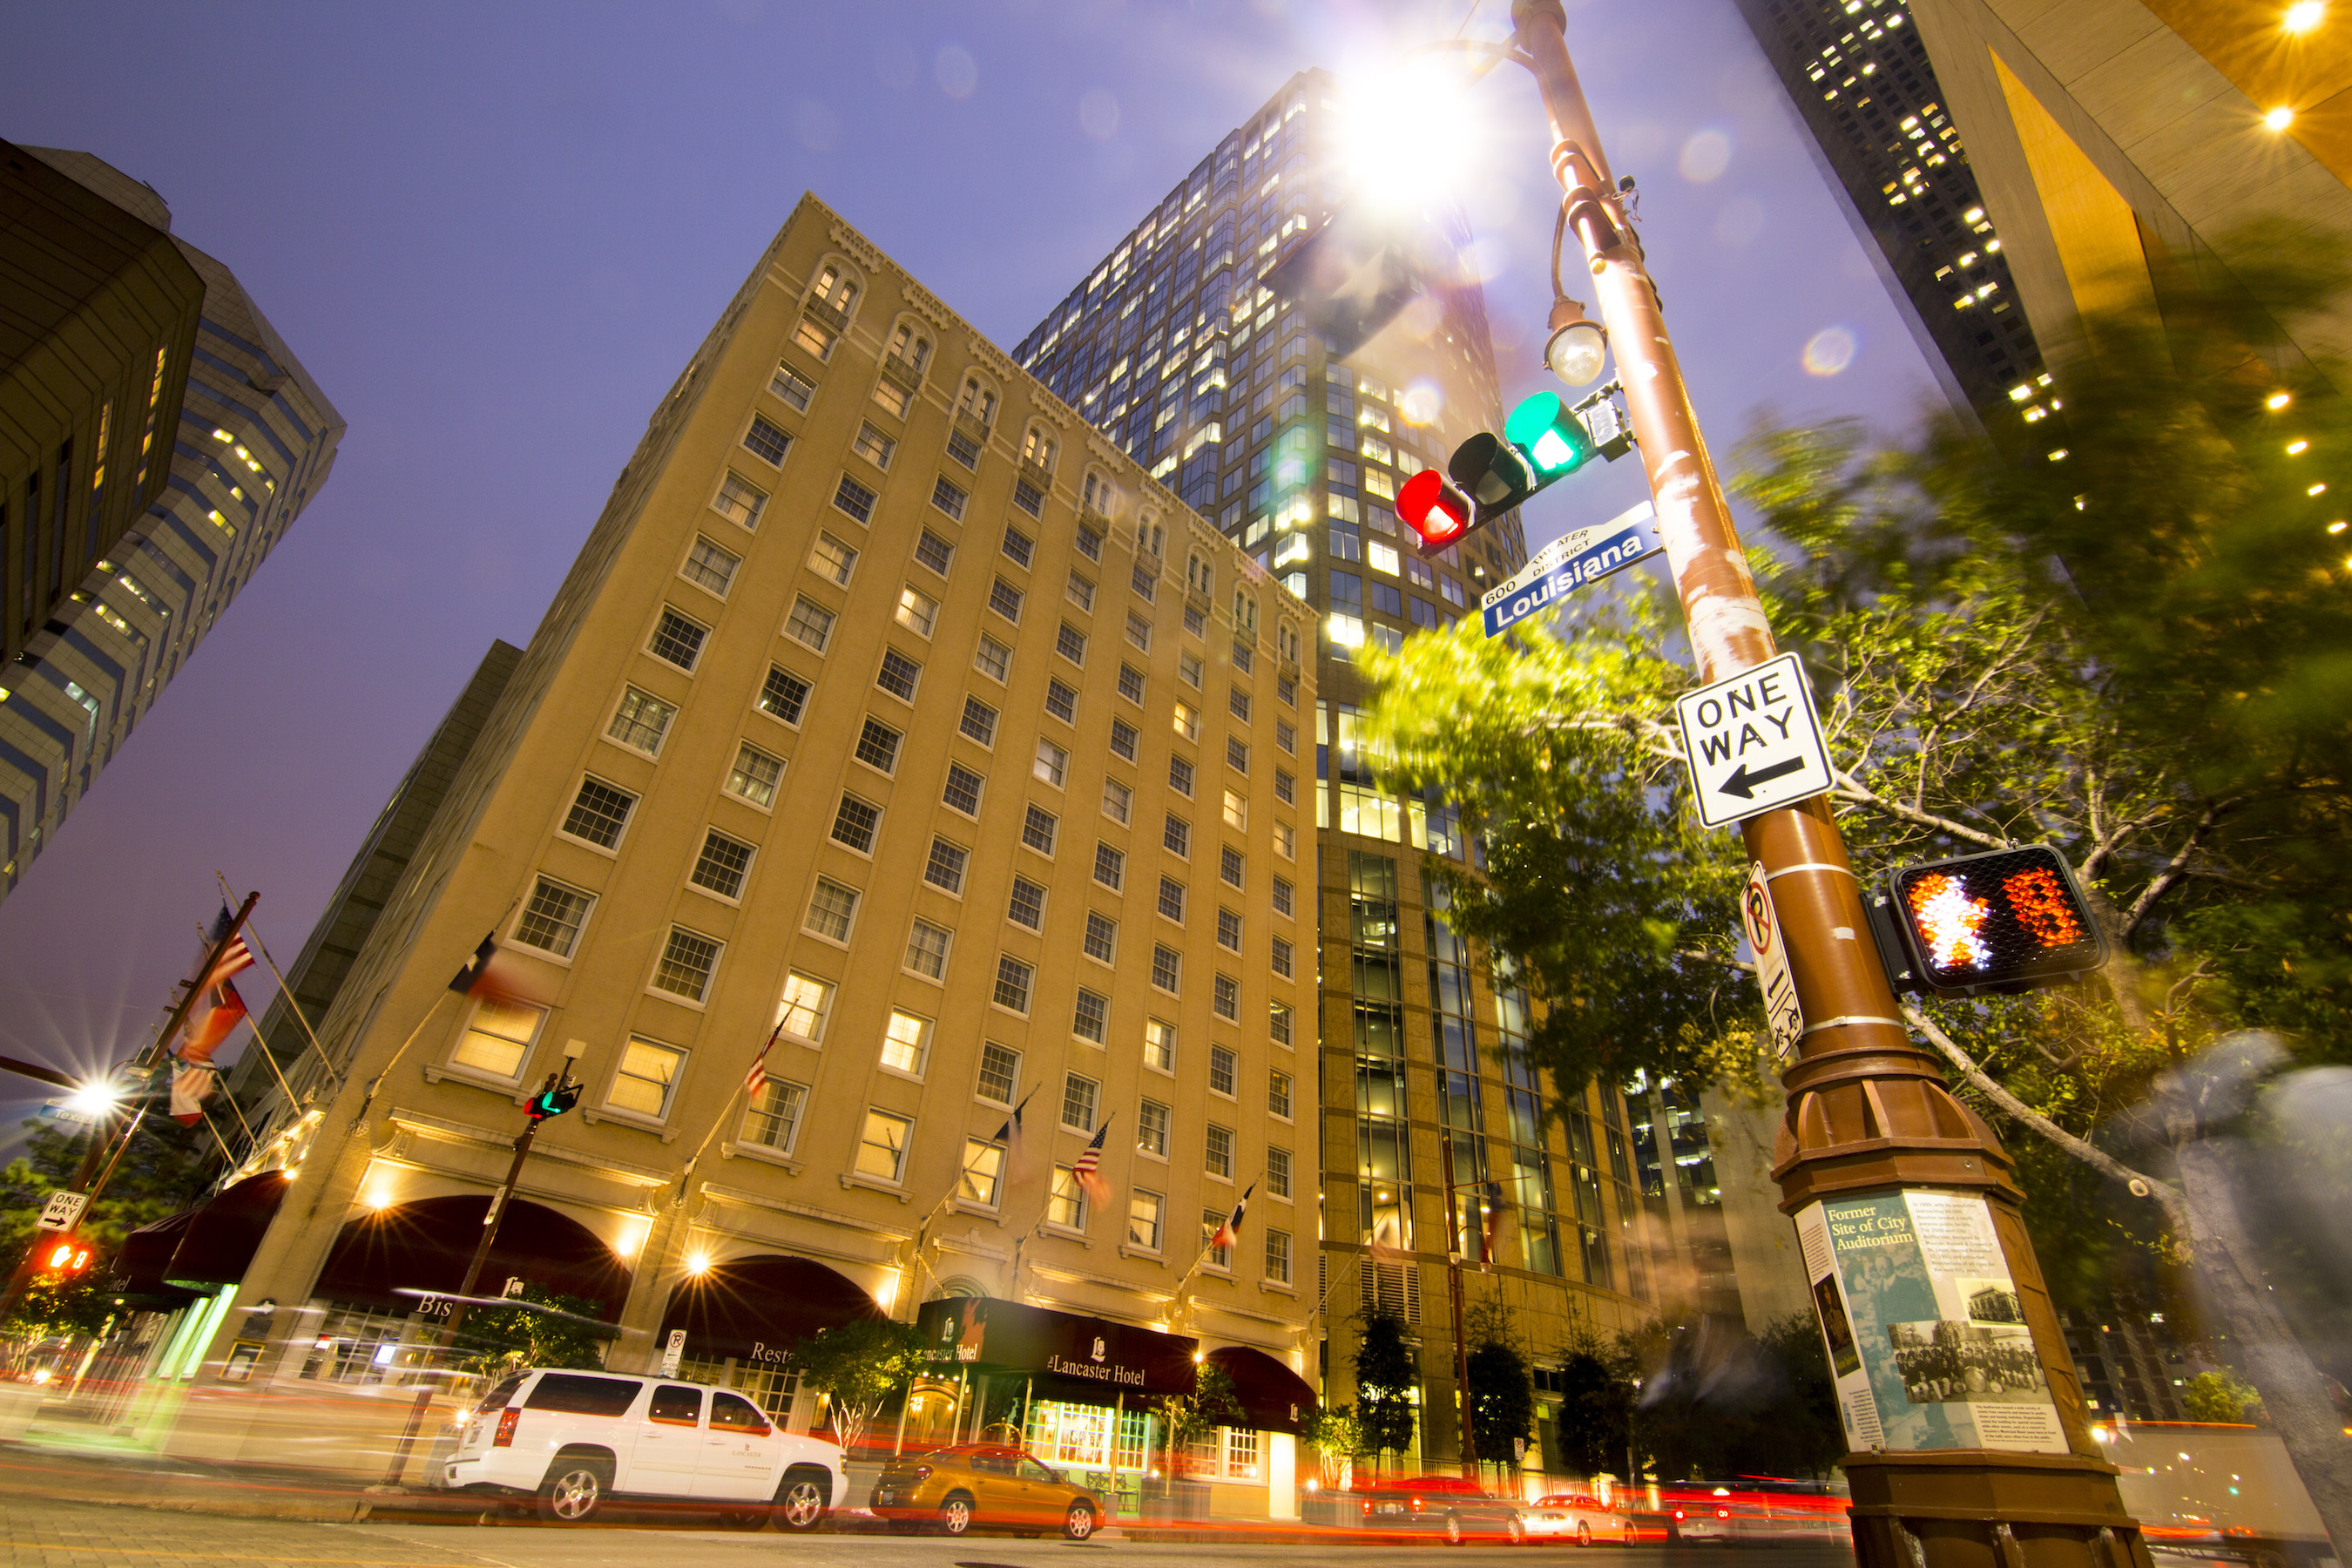 lancaster-hotel-front-exterior-angle-shot